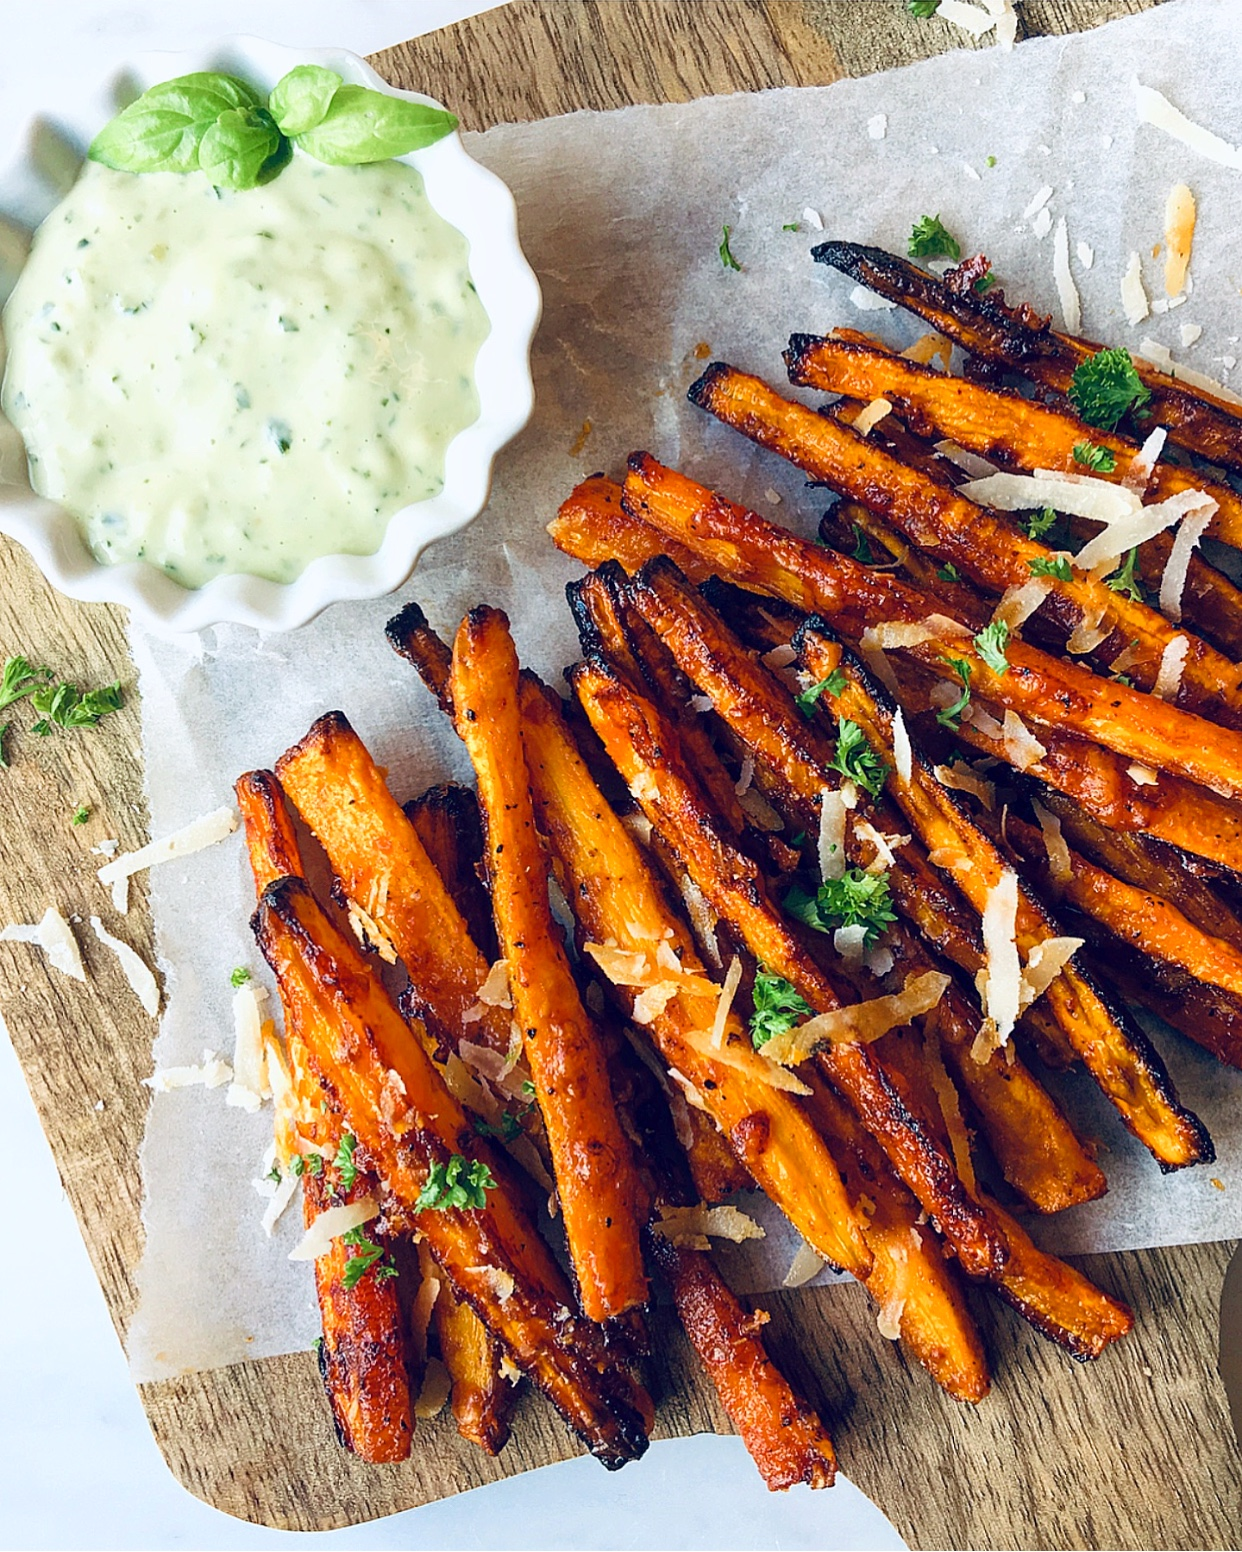 Crispy, delicious Carrot Fries - defo worth to try!